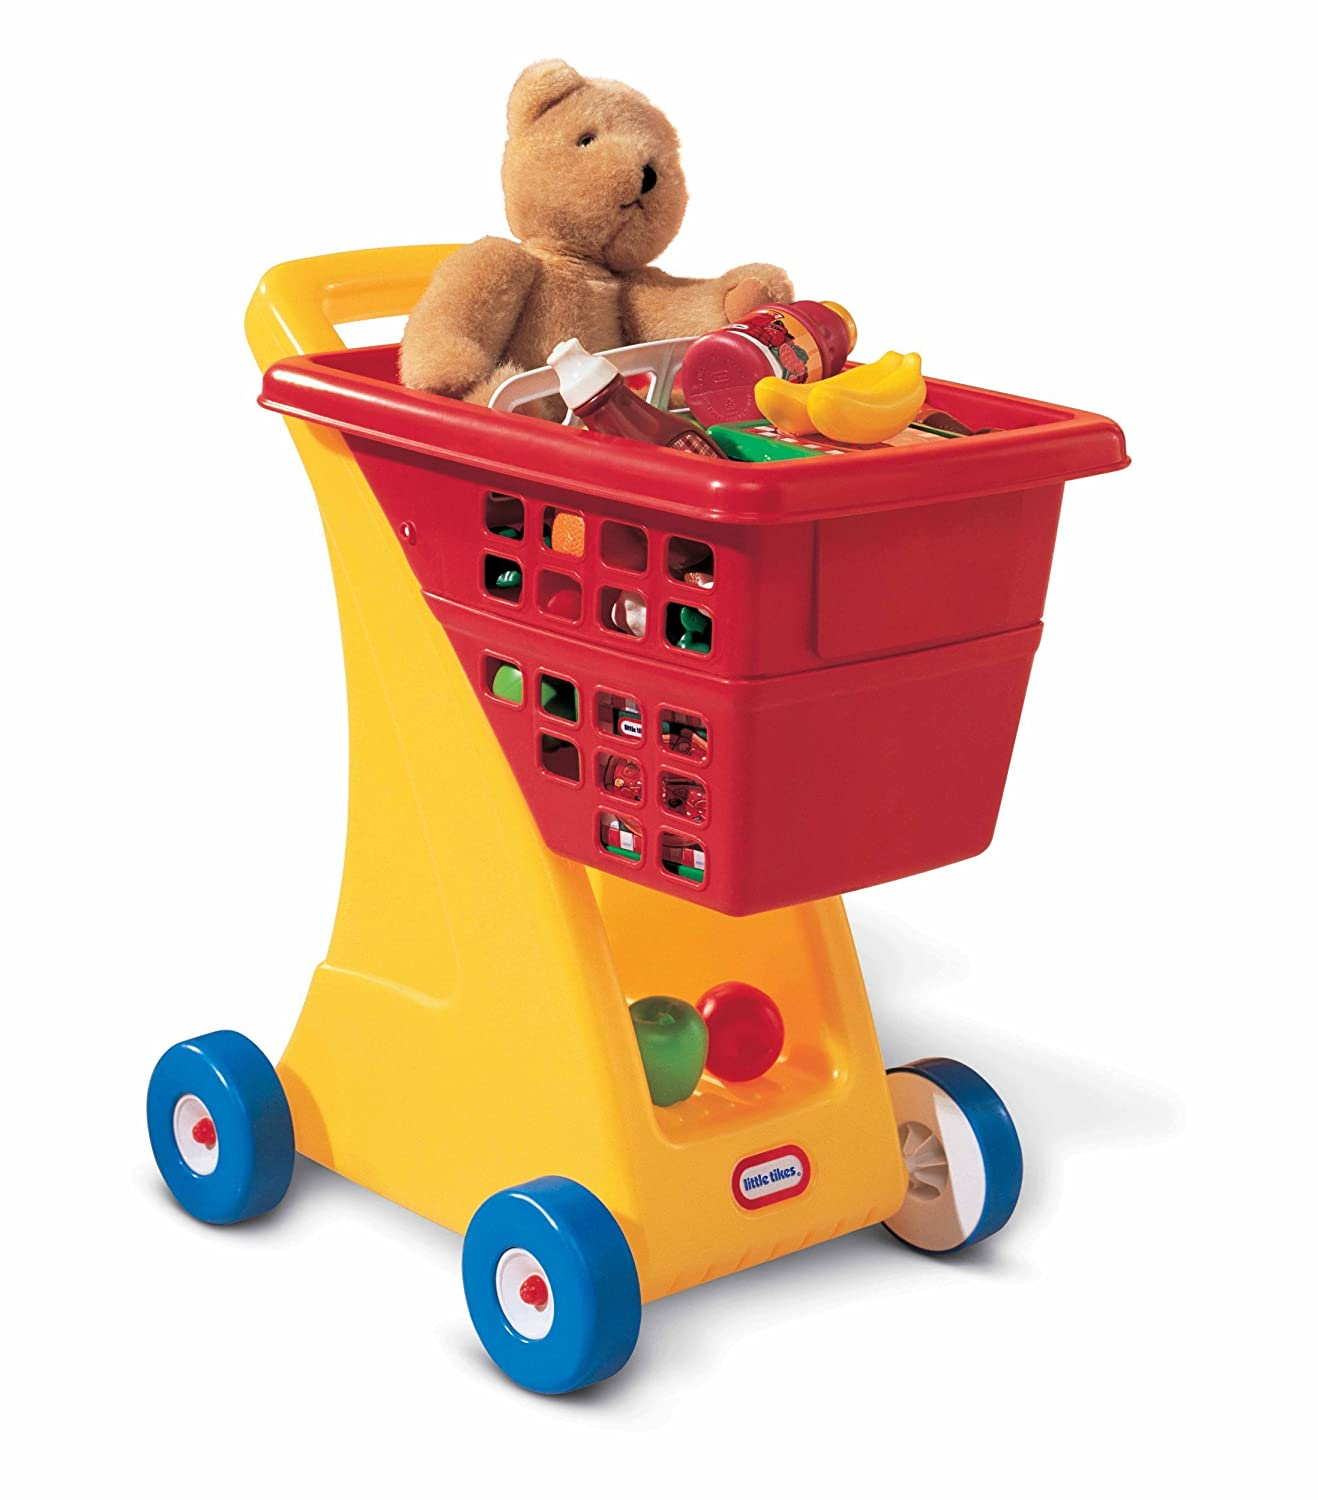 Amazon Little Tikes Shopping Cart Yellow Red Toys & Games